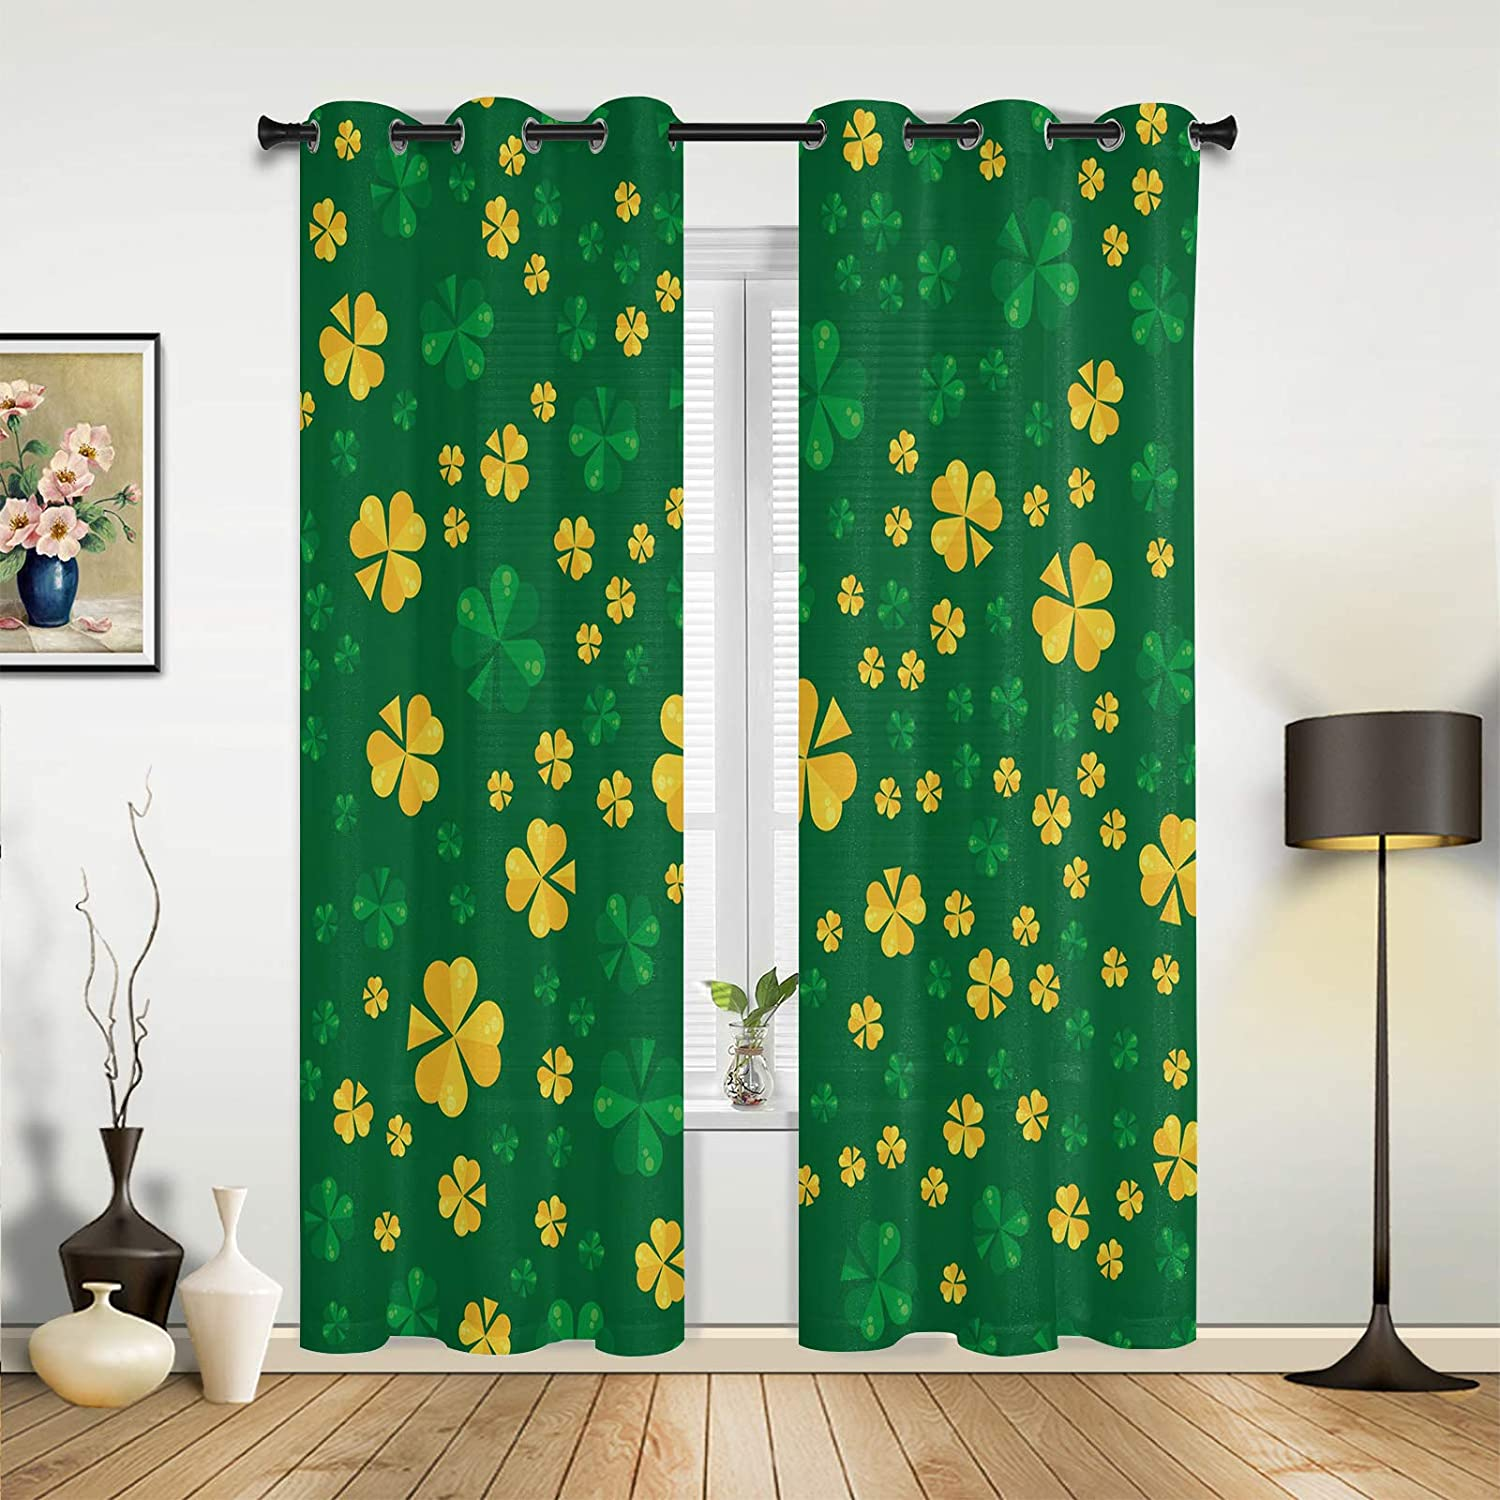 Window Curtains supreme Drapes Panels Happy Seasonal Wrap Introduction St. Patrick's Lucky Day Gree